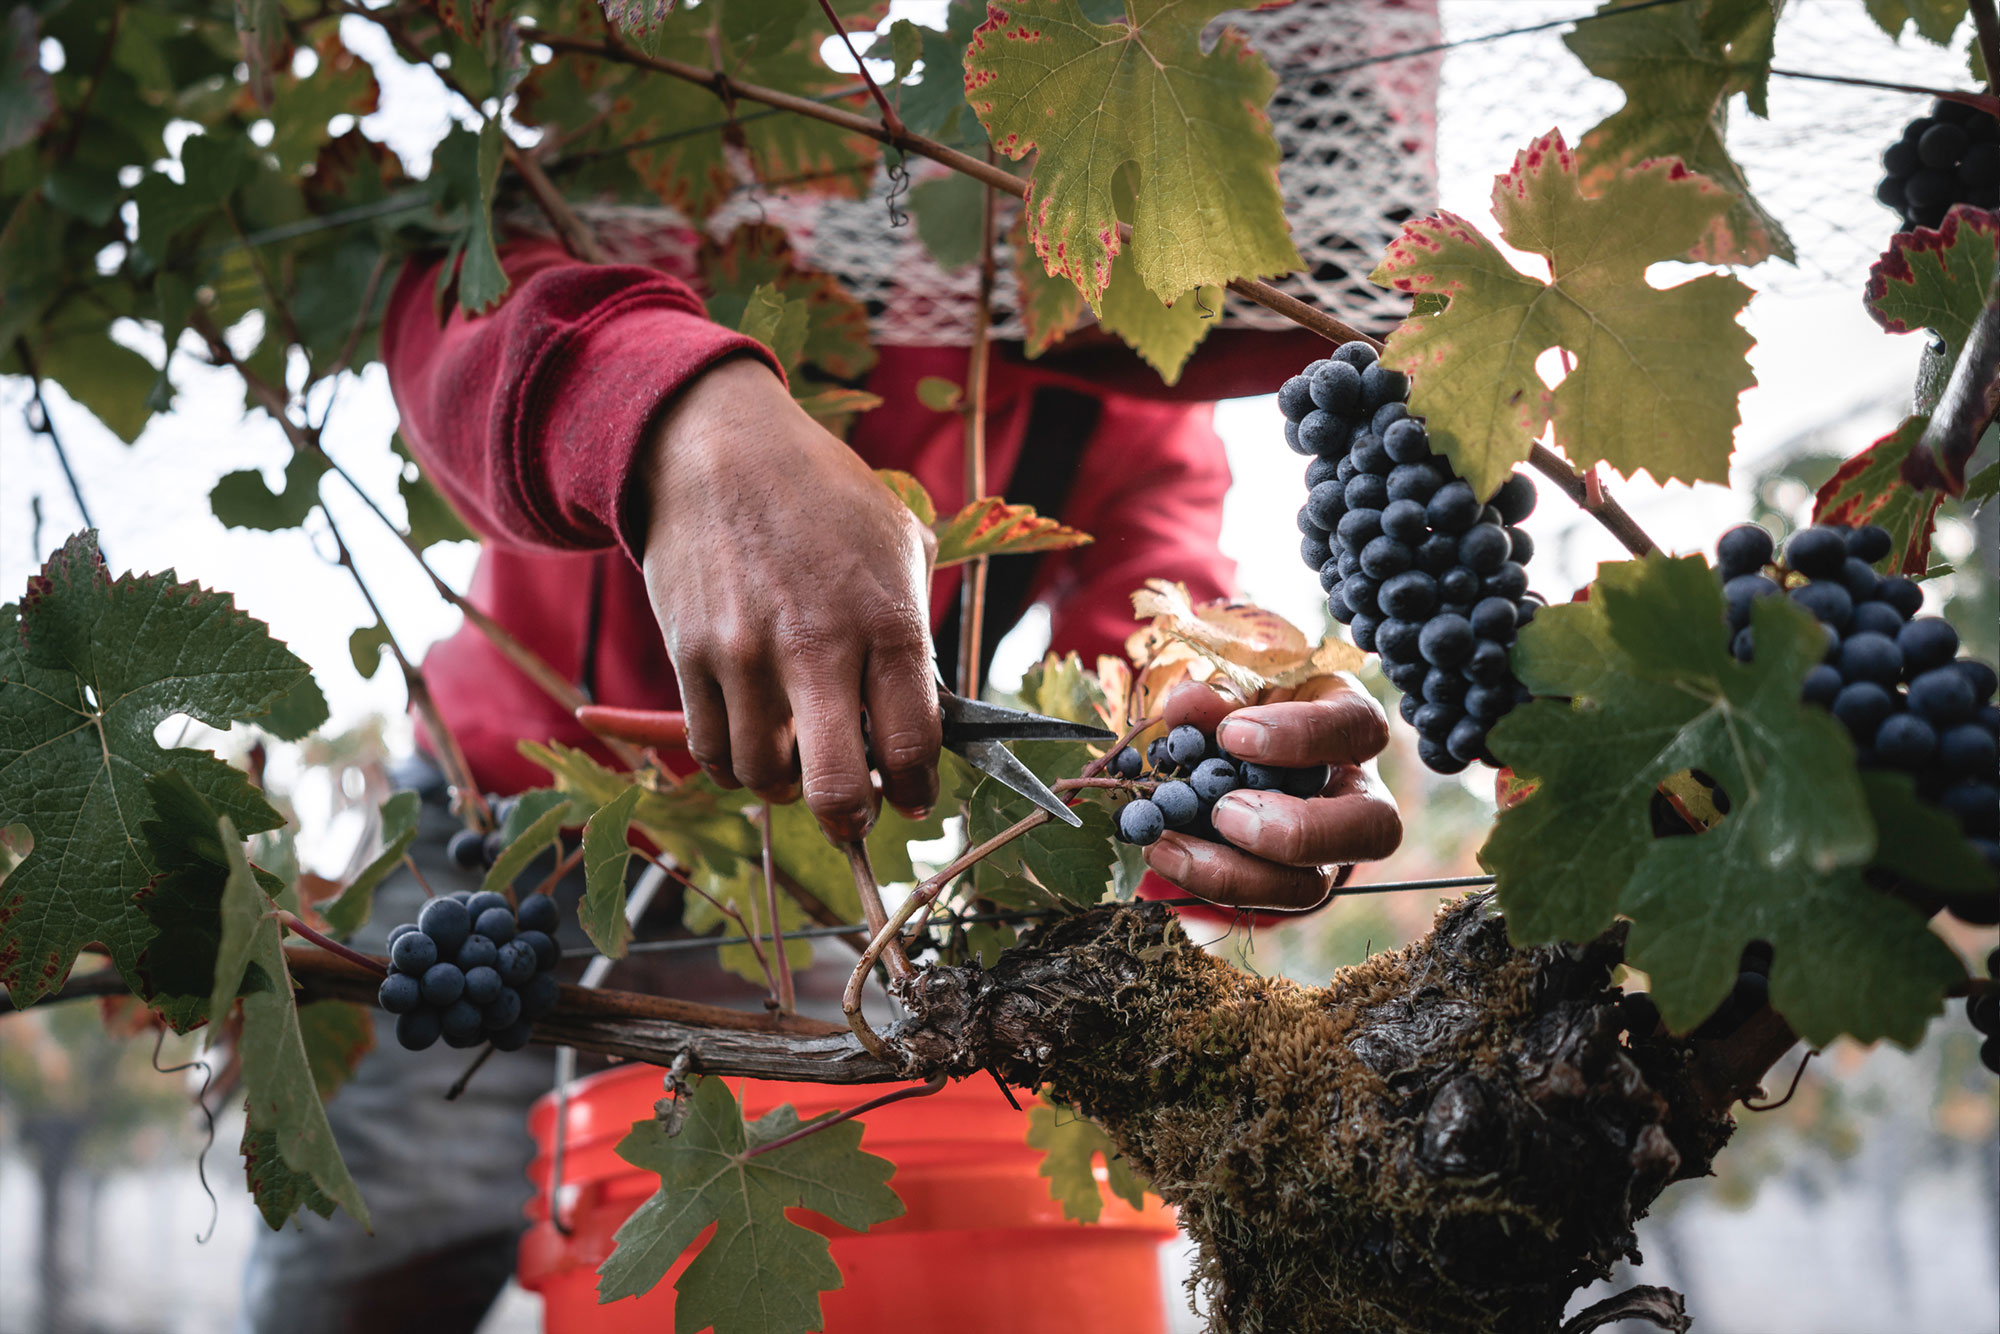 Worker picking grapes